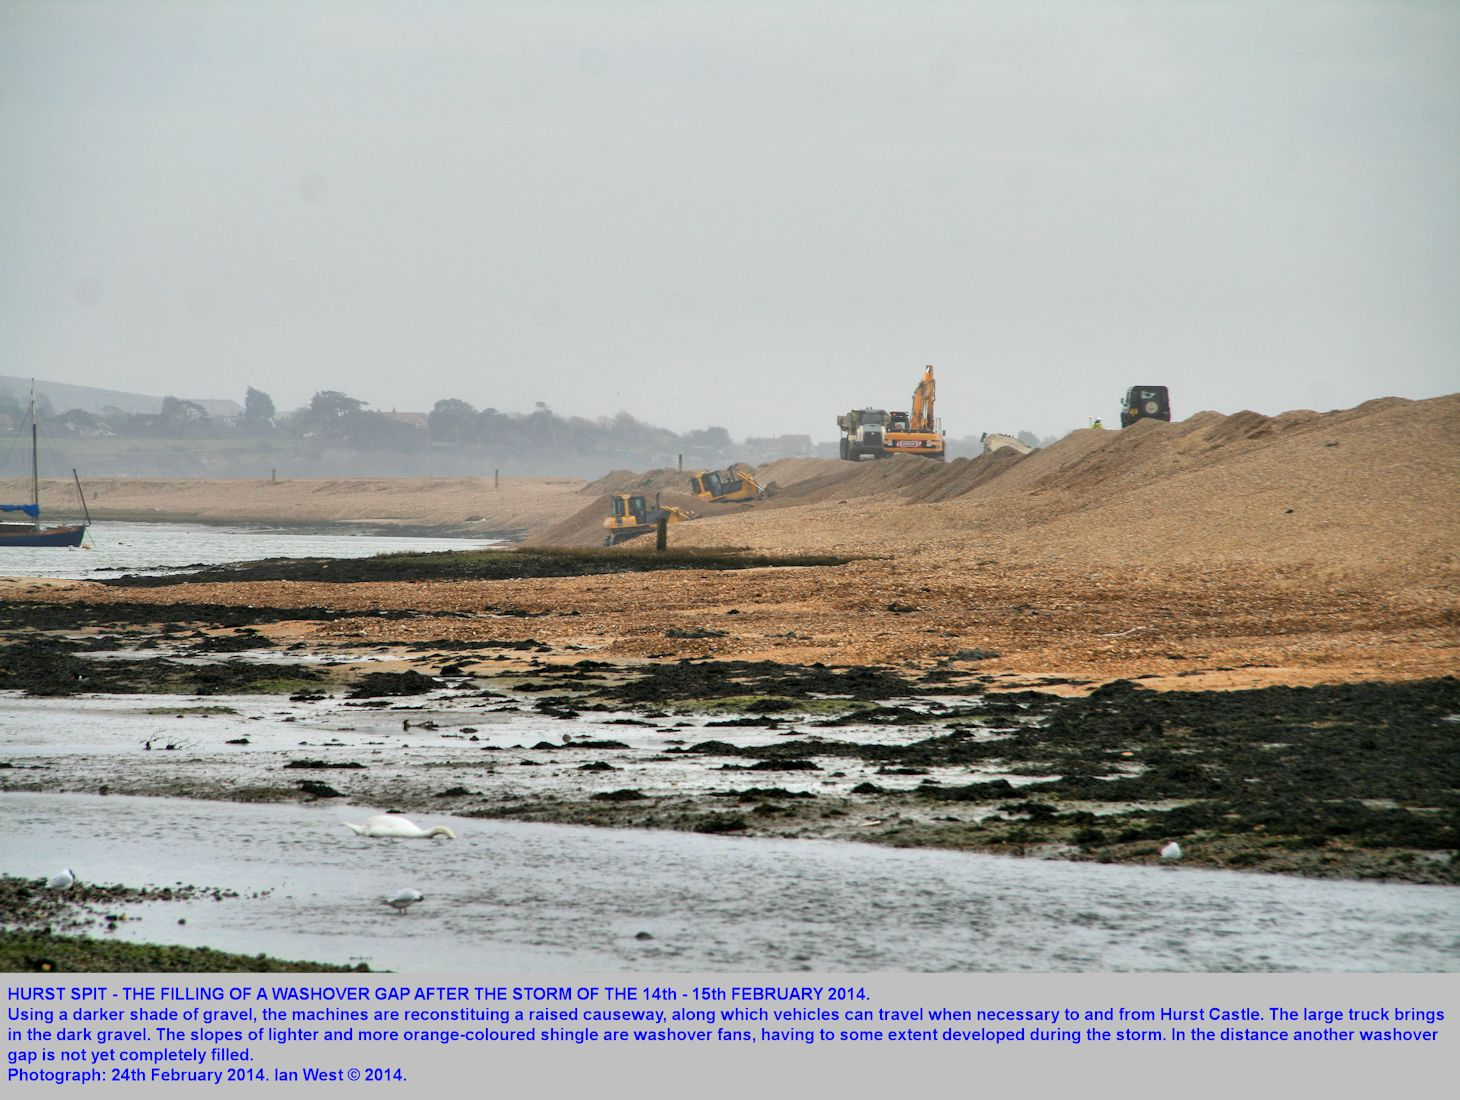 Machines start to repair washover gaps from storms at Hurst Spit, Hampshire, 24th February 2014